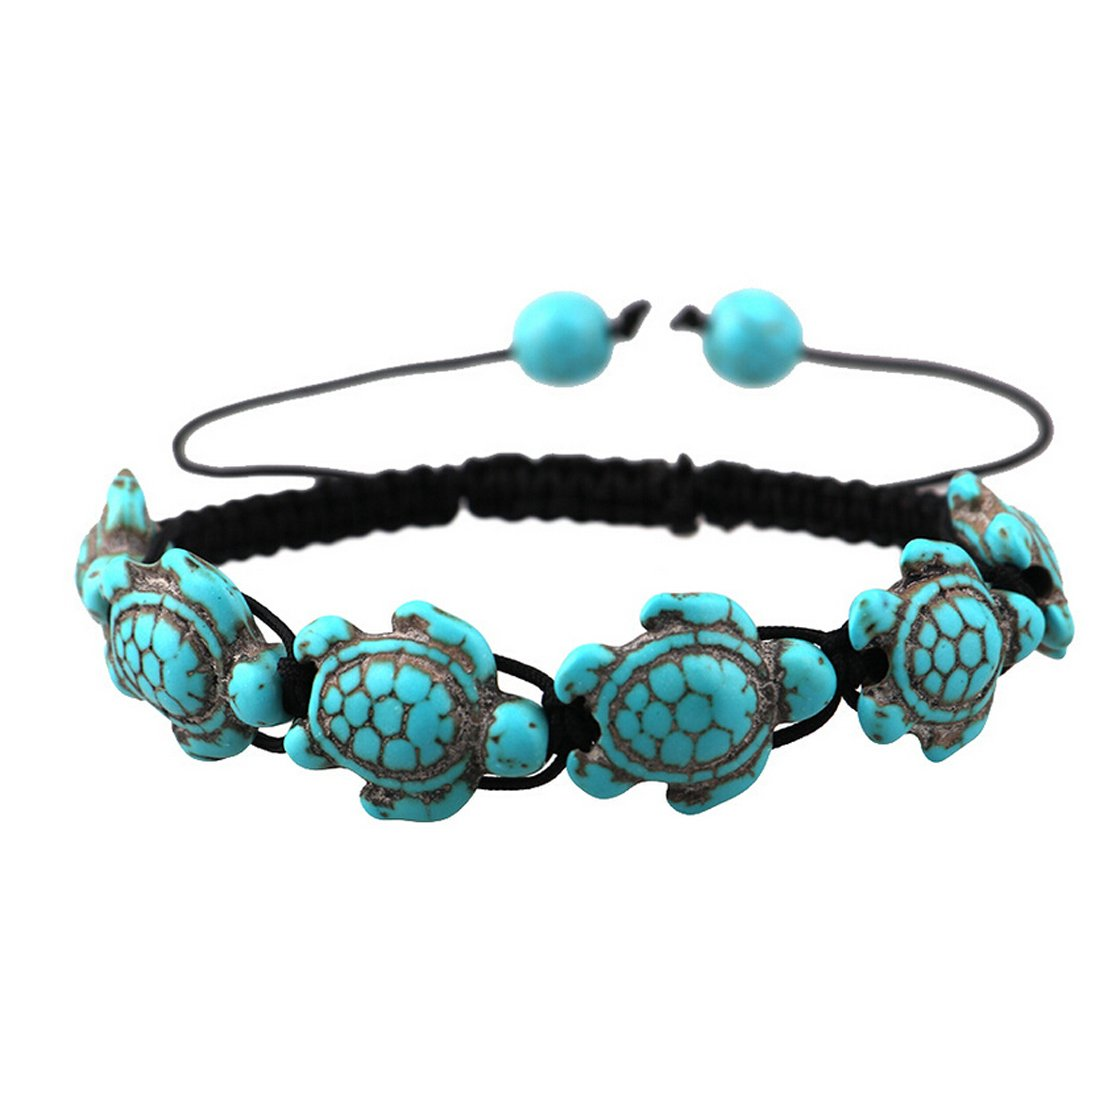 Meolin Bohemian Turquoise Turtle Adjustable Bangle Bracelet